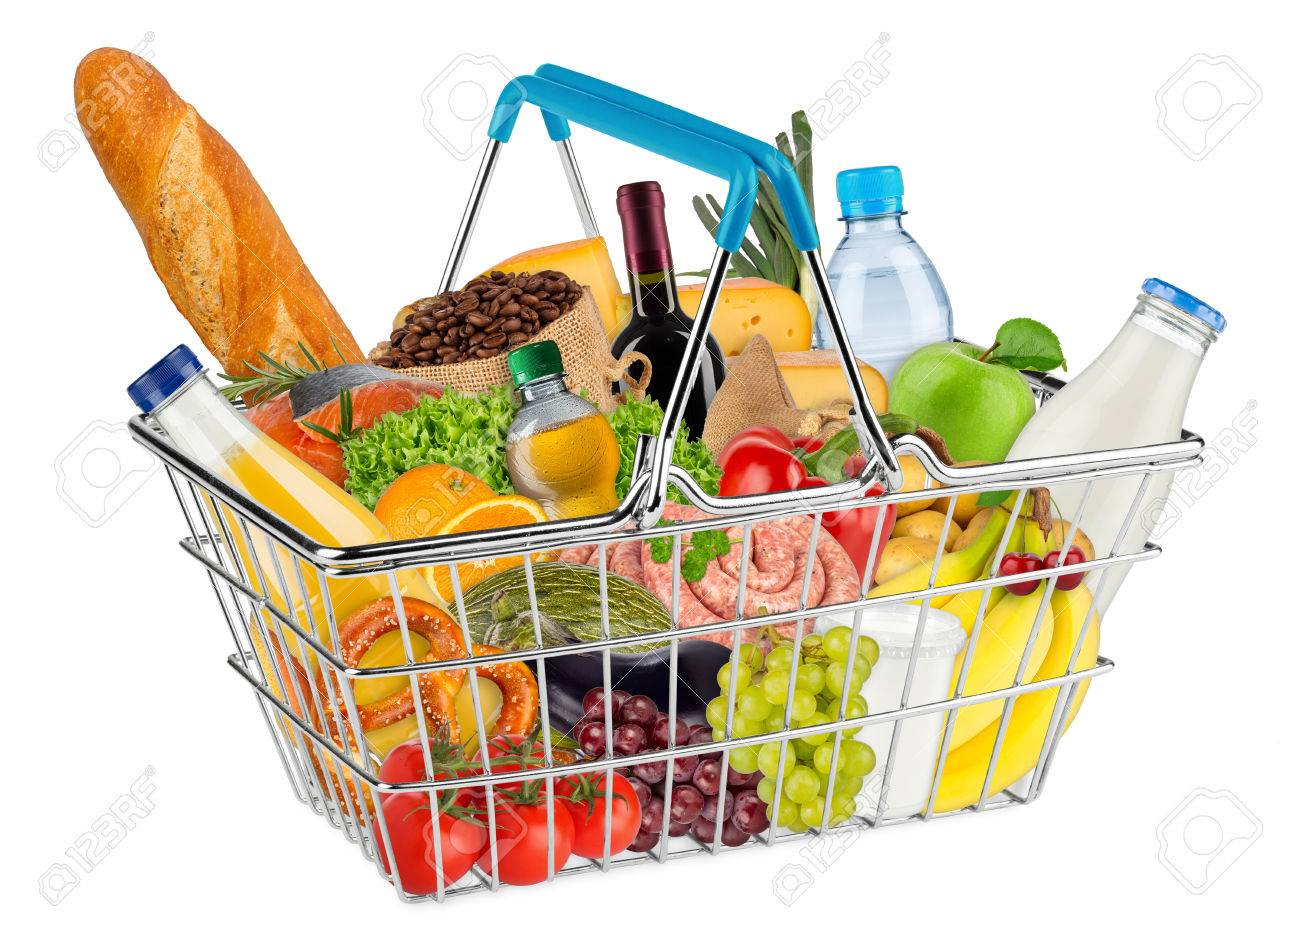 blue shopping basket filled with various food and beverages isolated on white background - 61036794